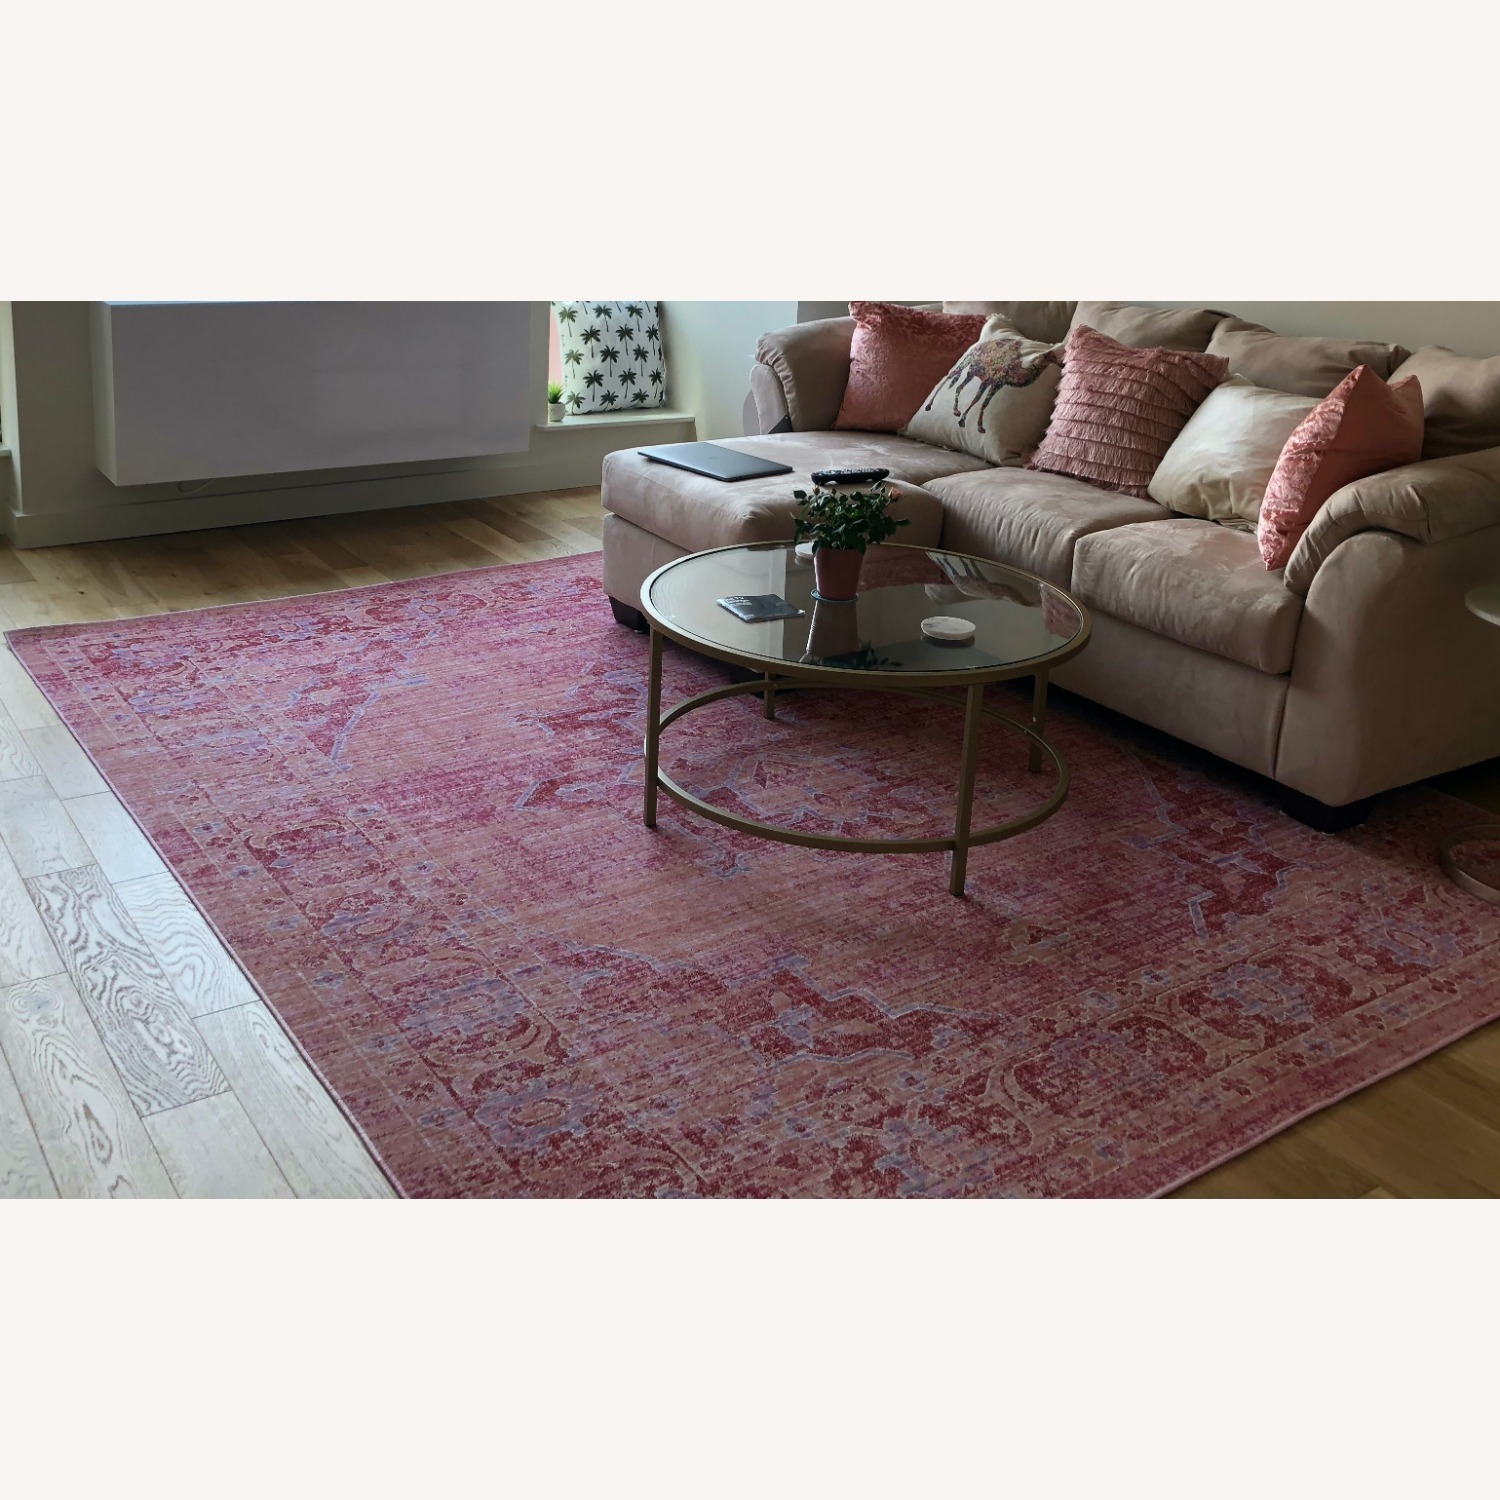 Safavieh 8x10 Pink and Multi-Color Area Rug - image-4